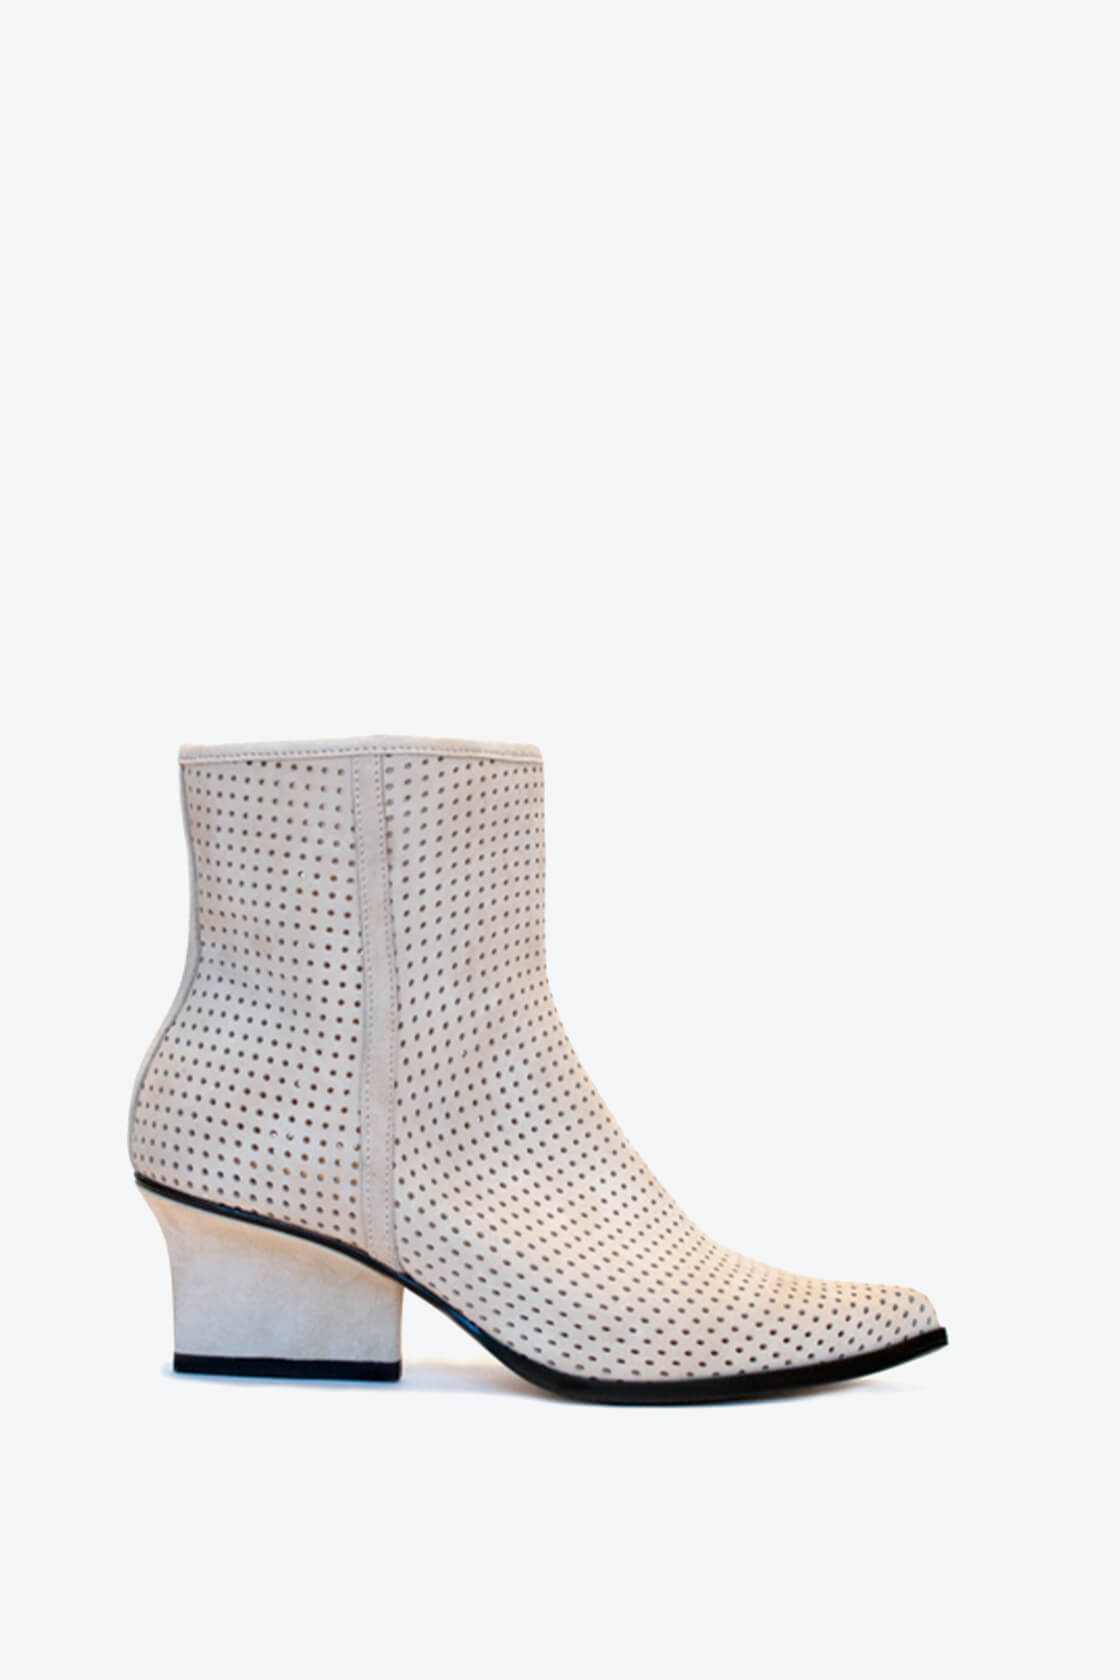 EJK0000017 Tommie ankle boots sand 1